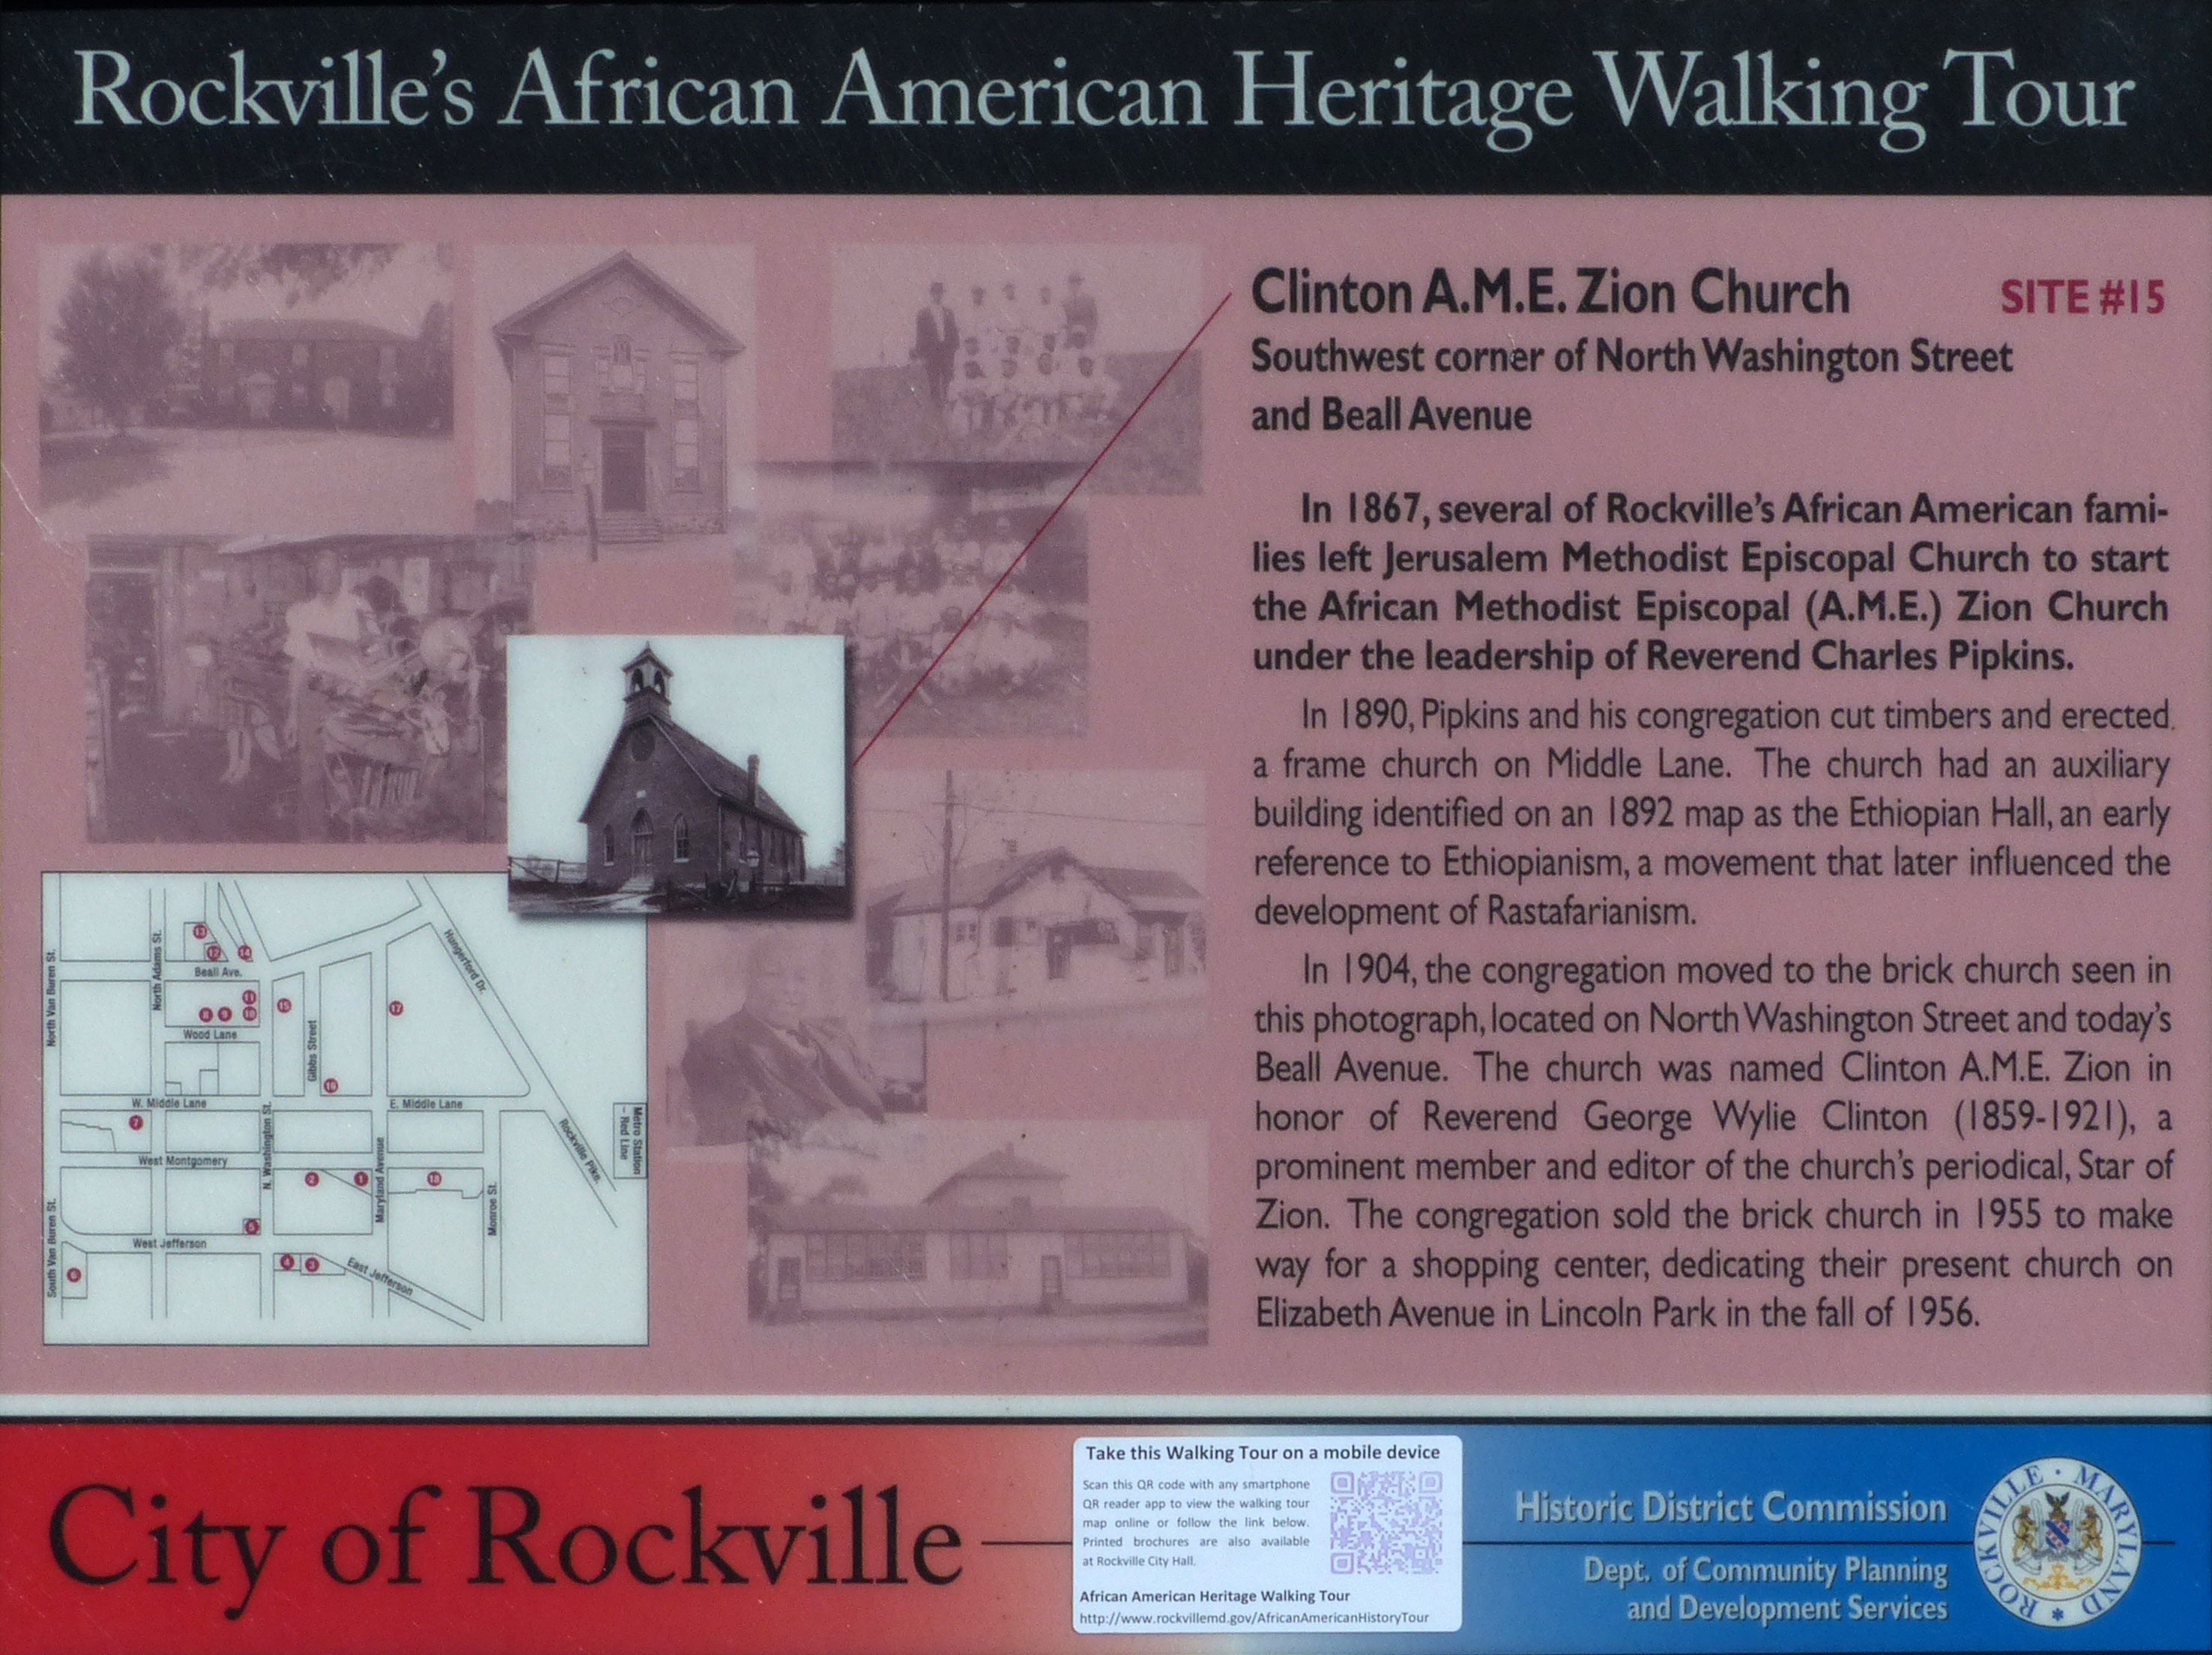 Clinton A.M.E. Zion Church Marker